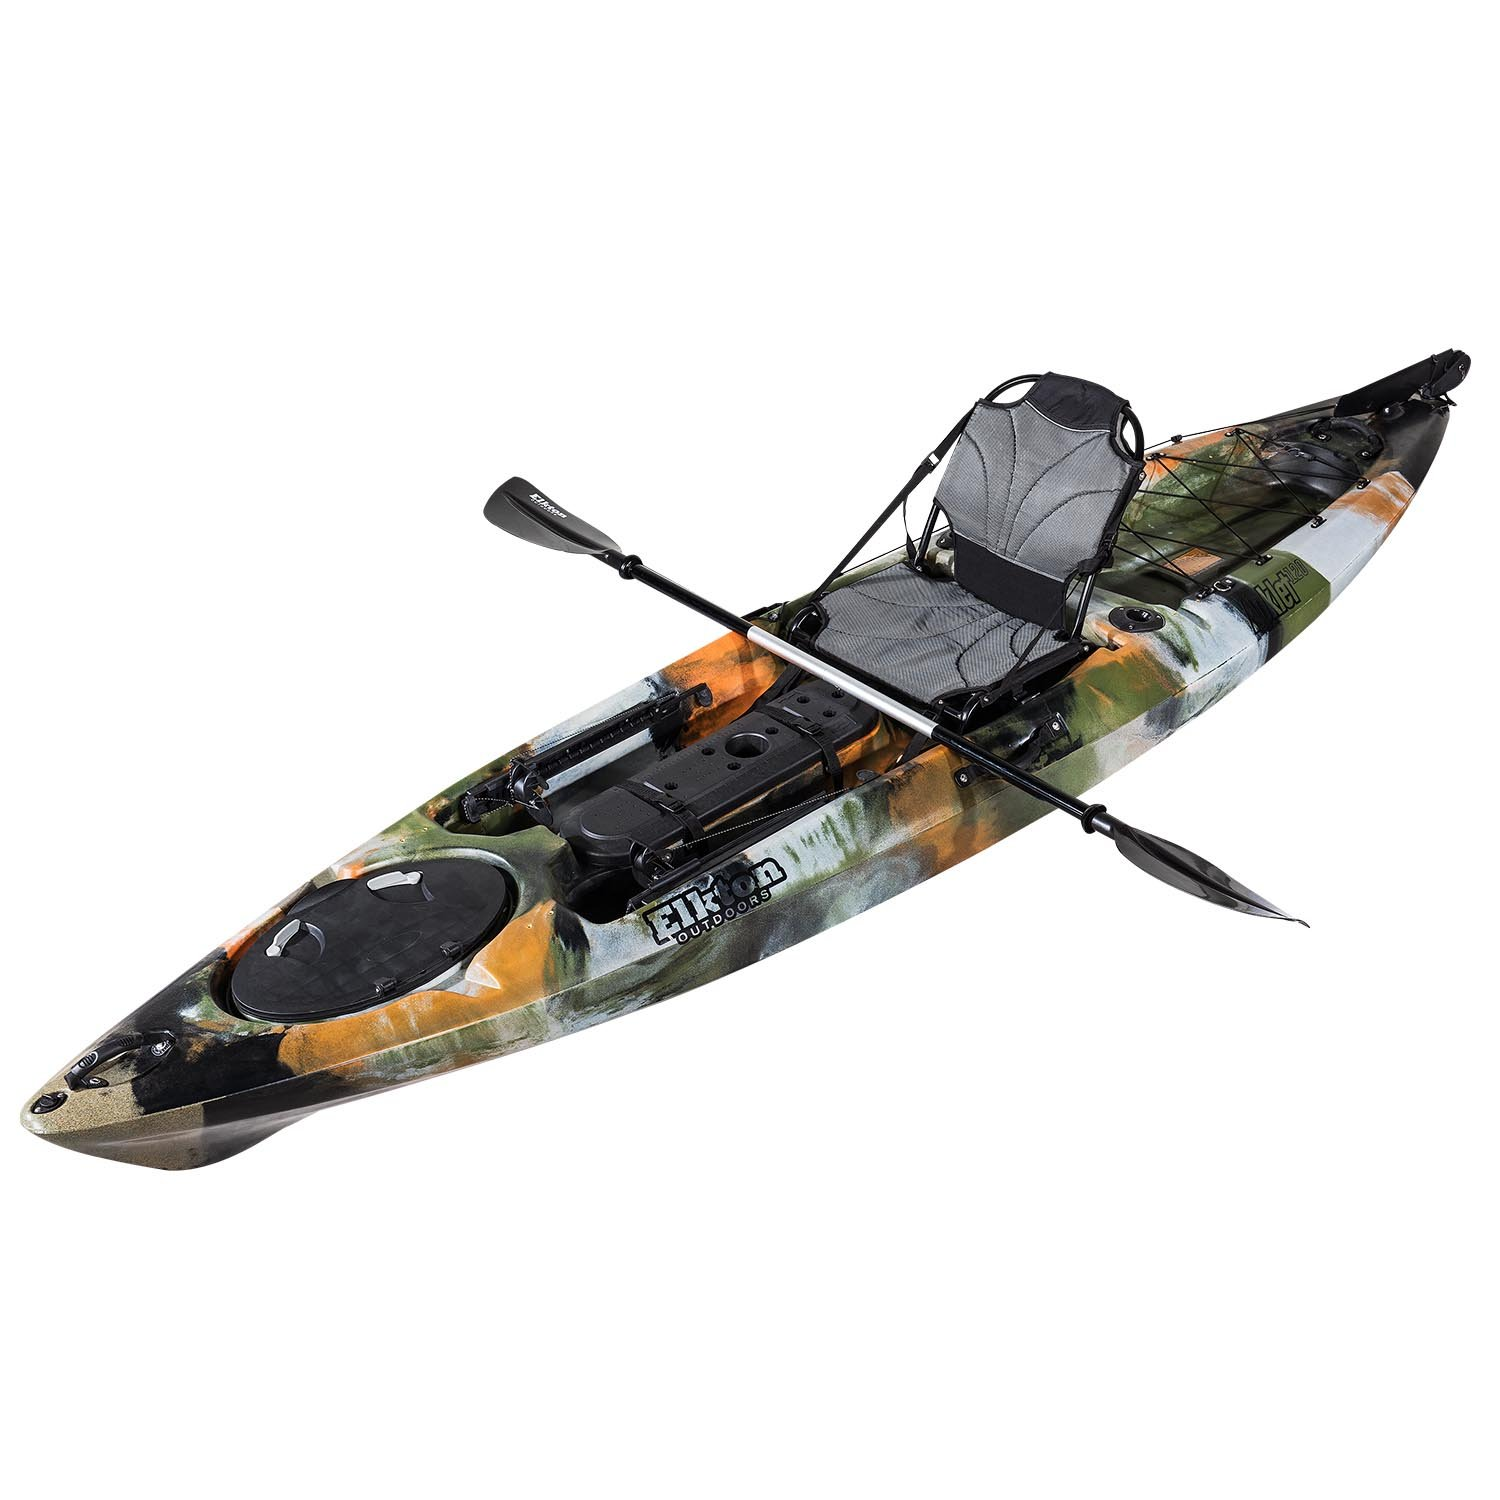 Auklet 120 12 Sit On Top Fishing Kayak With Smarttrack